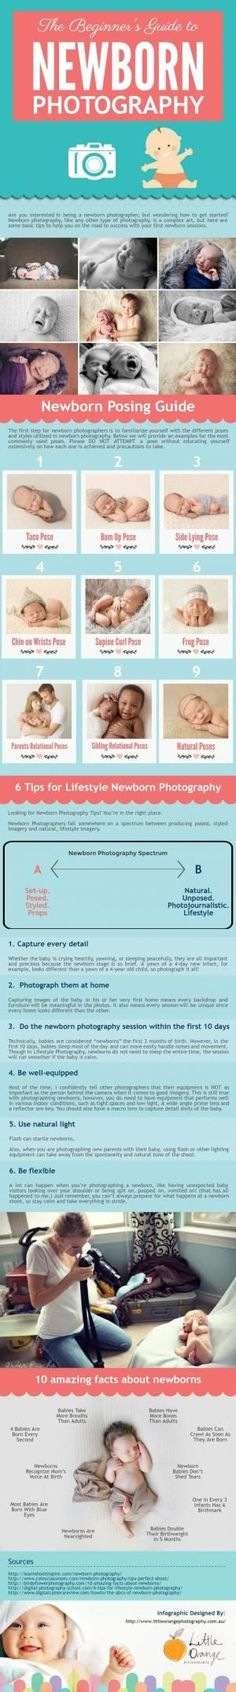 The Beginner's Guide to Newborn Photography #Infographics by marilise.sleigh